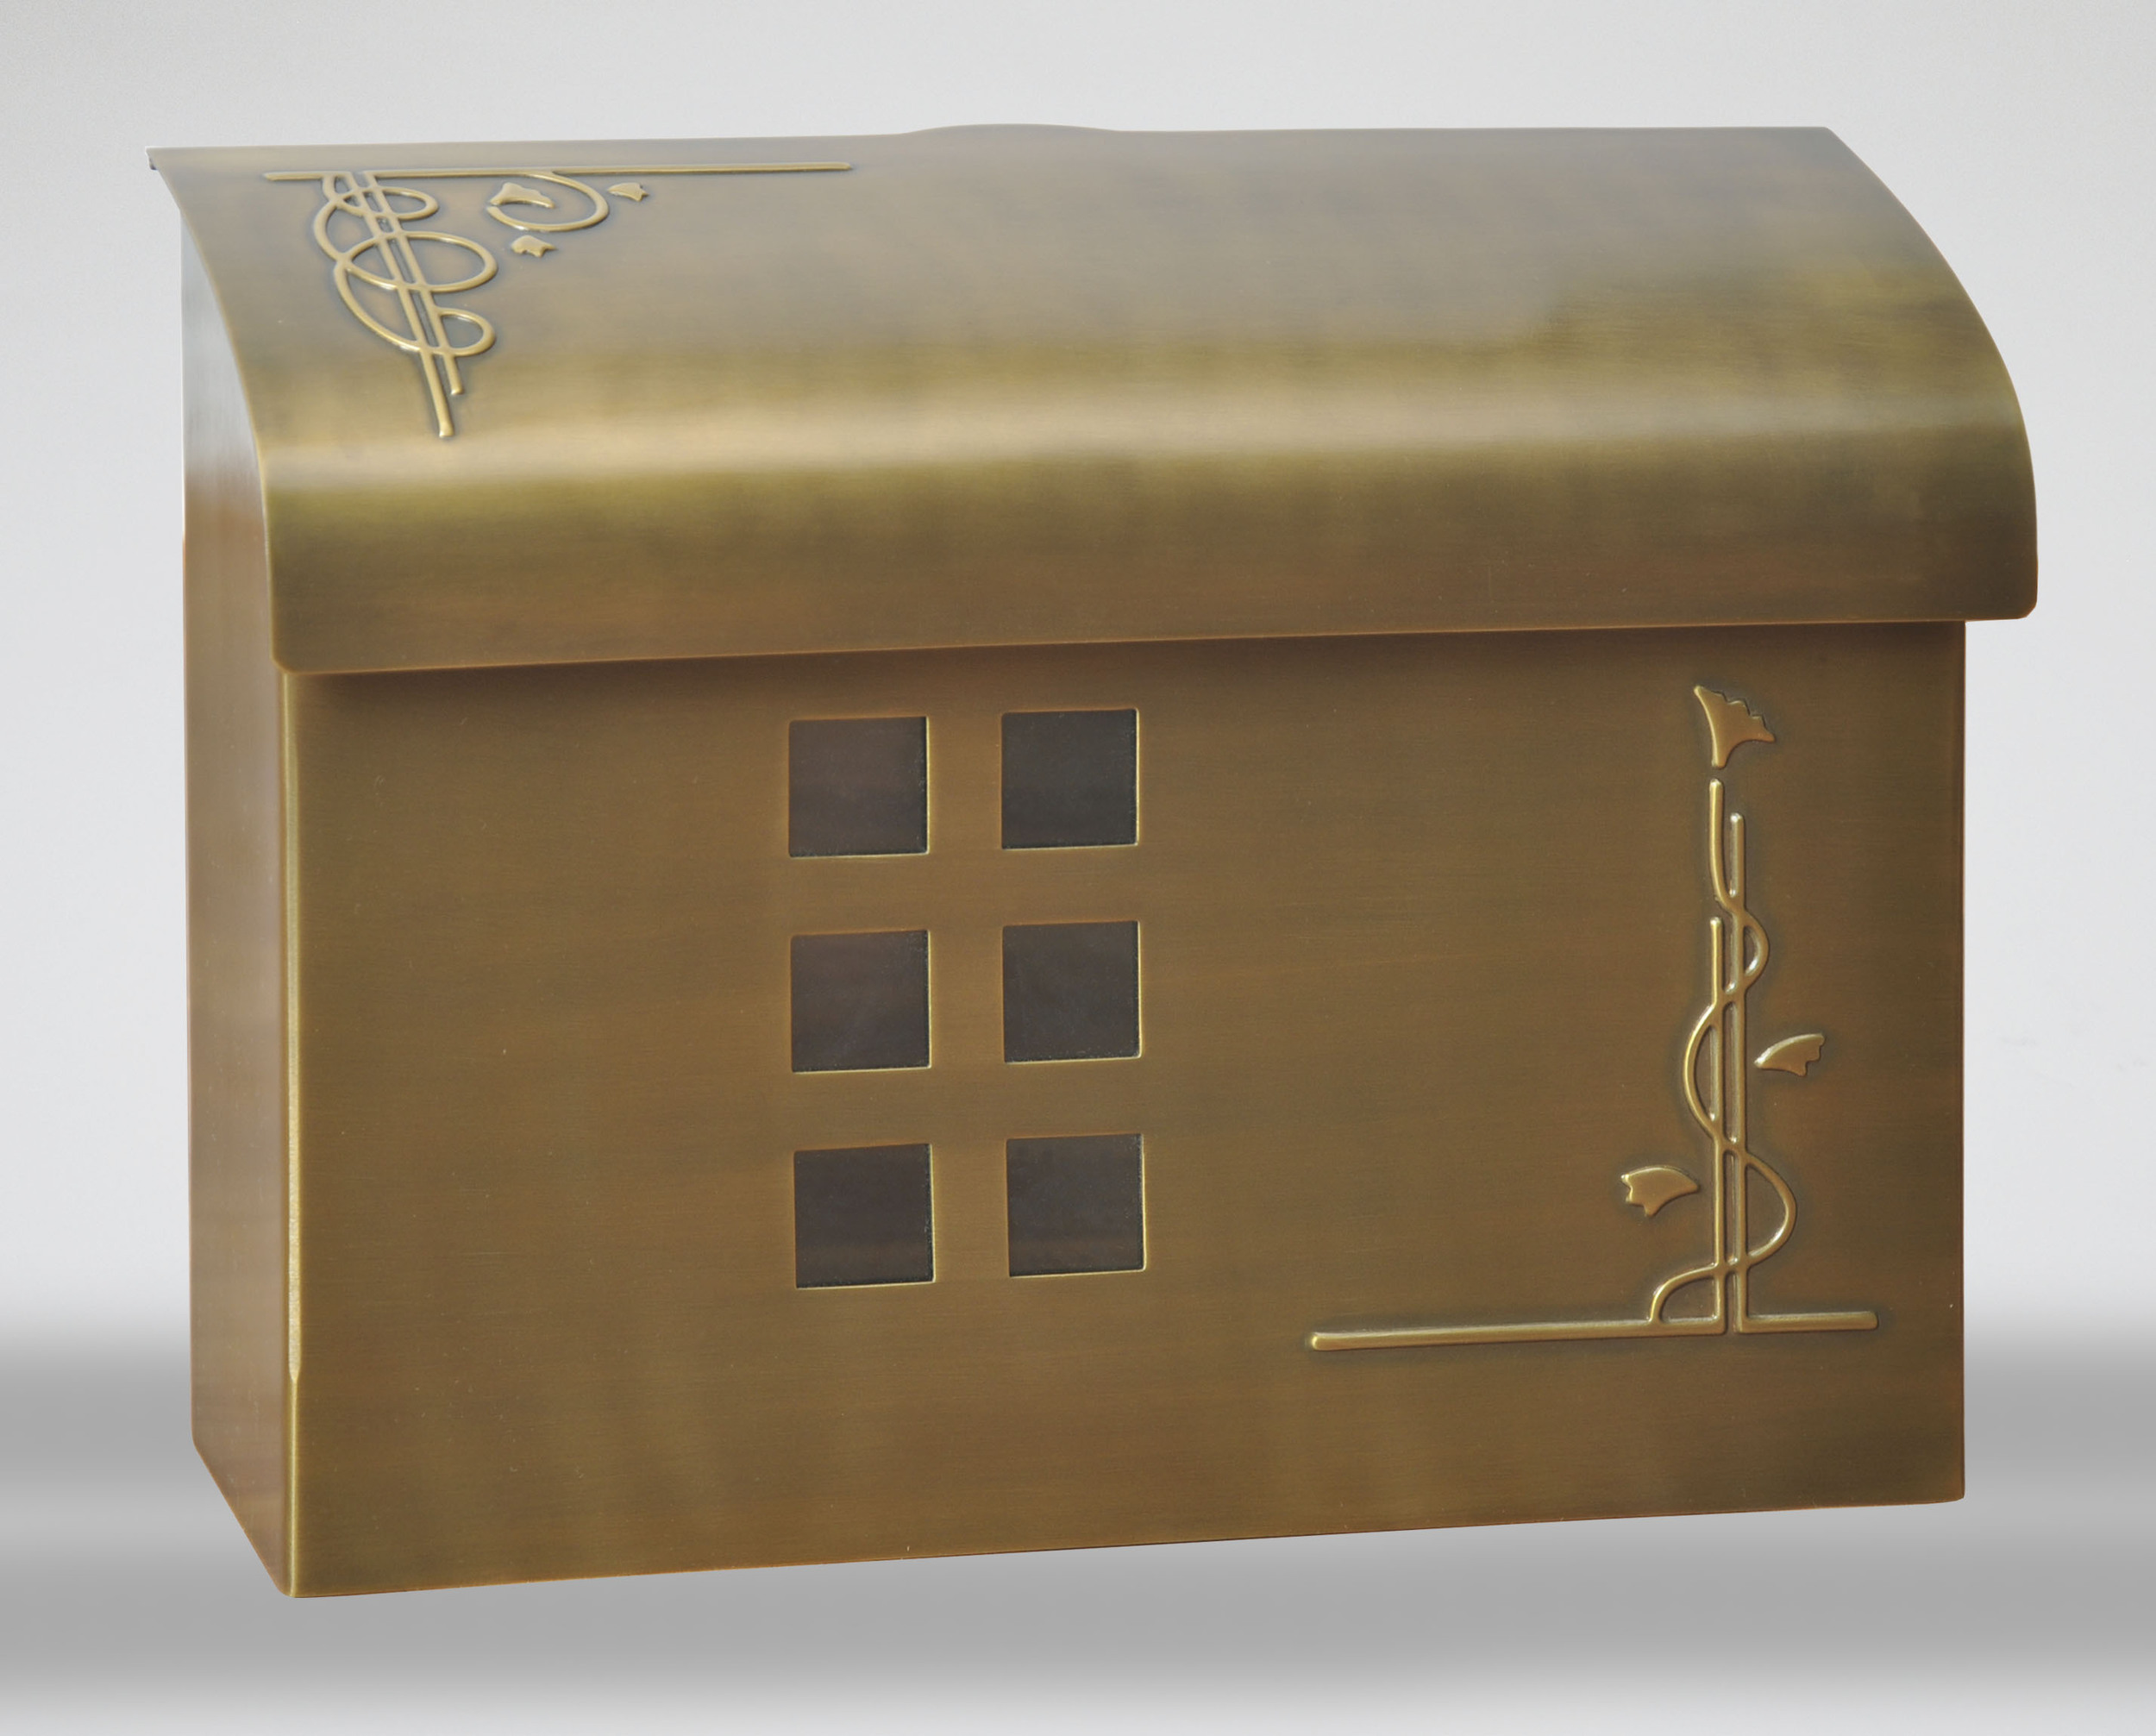 212E7BS   Arts & Crafts wall mount mail box.   Size: 14.5 W 11 H 5 D. Hardware included. Shown in satin brass antique. Other finishes available.